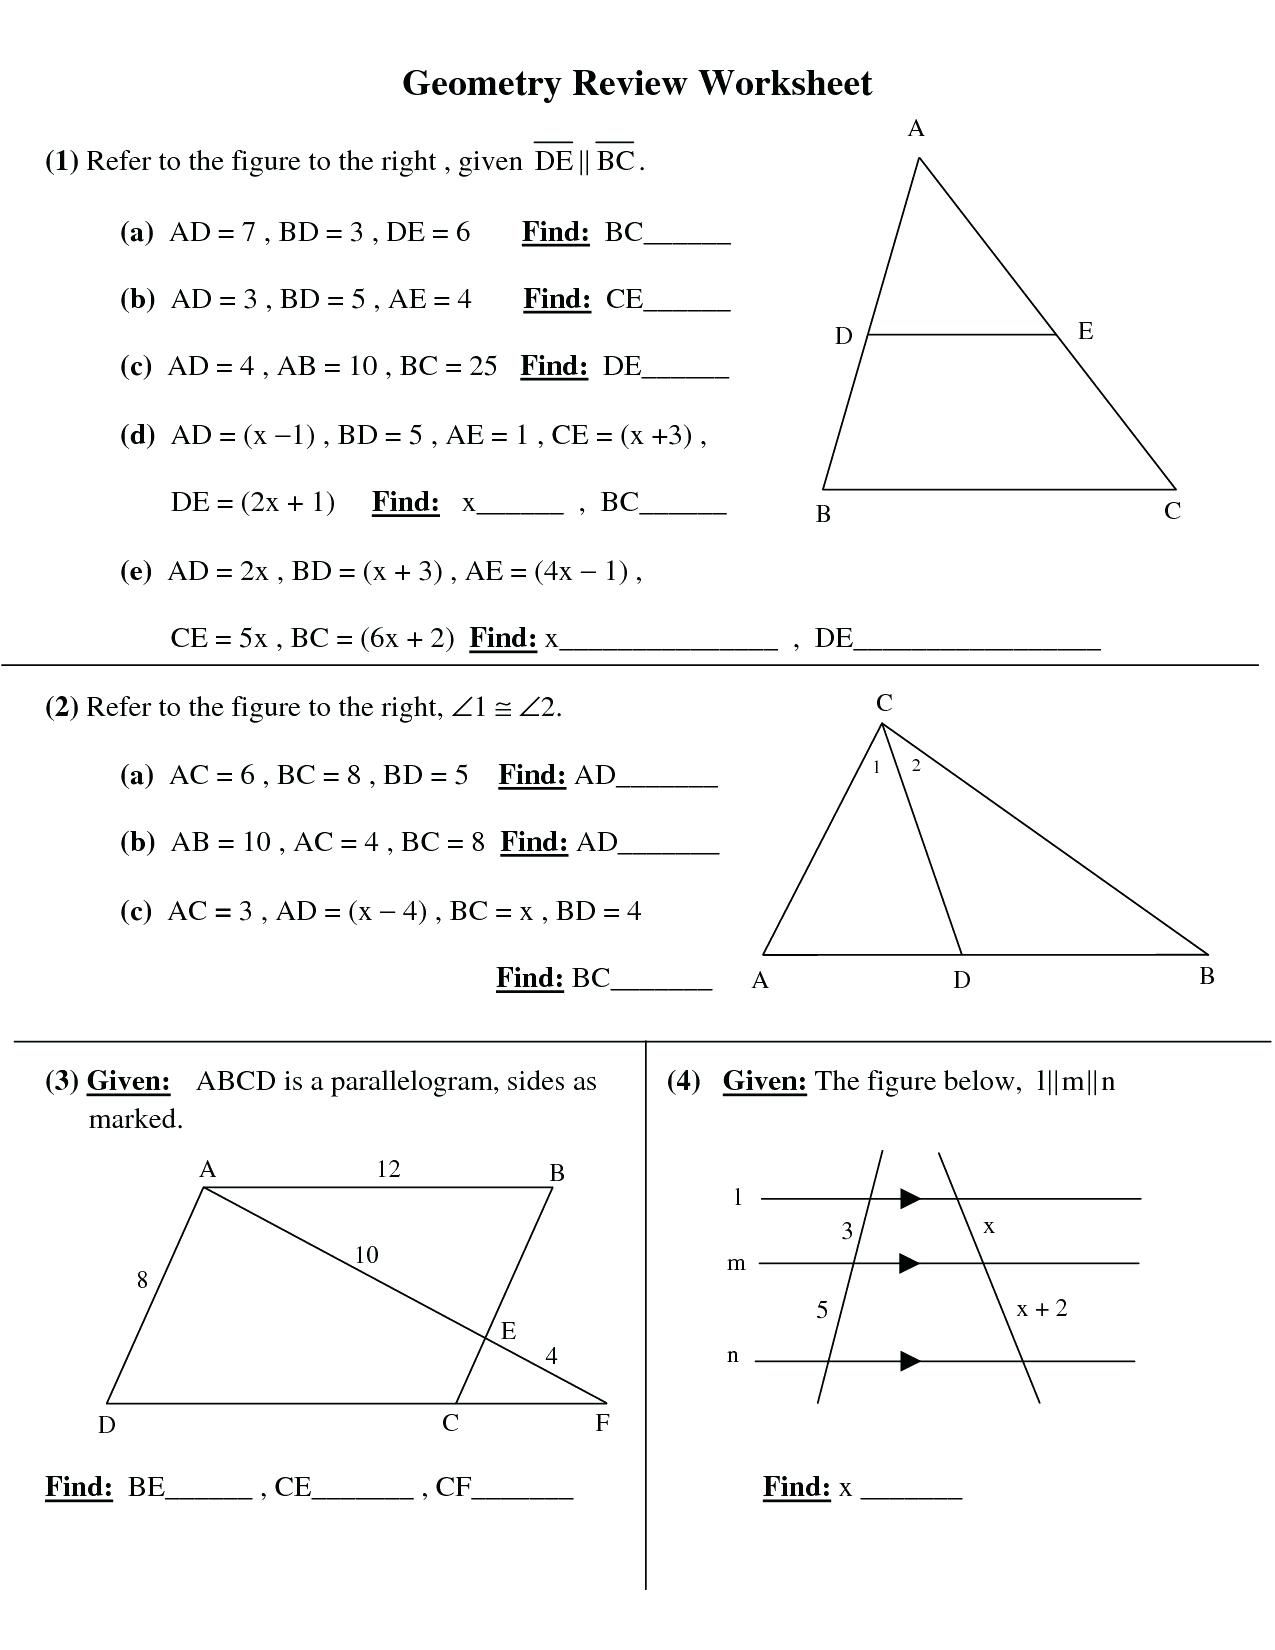 8th Grade Math Worksheets For Practice In 2020 Geometry Worksheets 8th Grade Math Worksheets Geometry High School